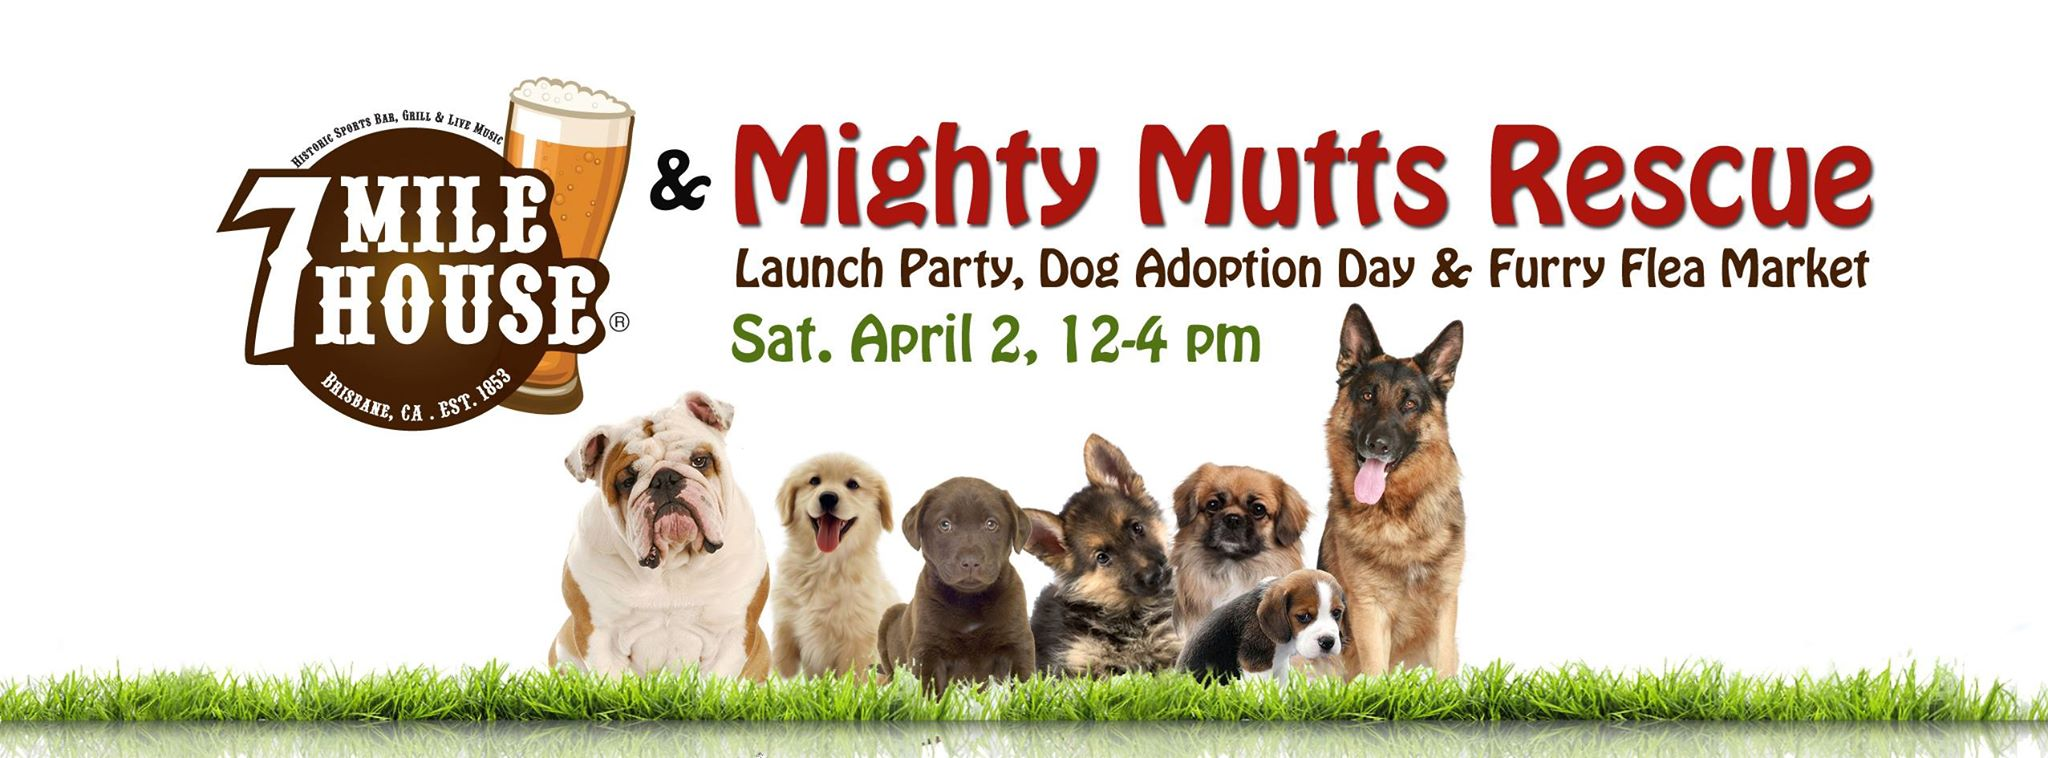 7milehouse-mightymuttsrescue-launch